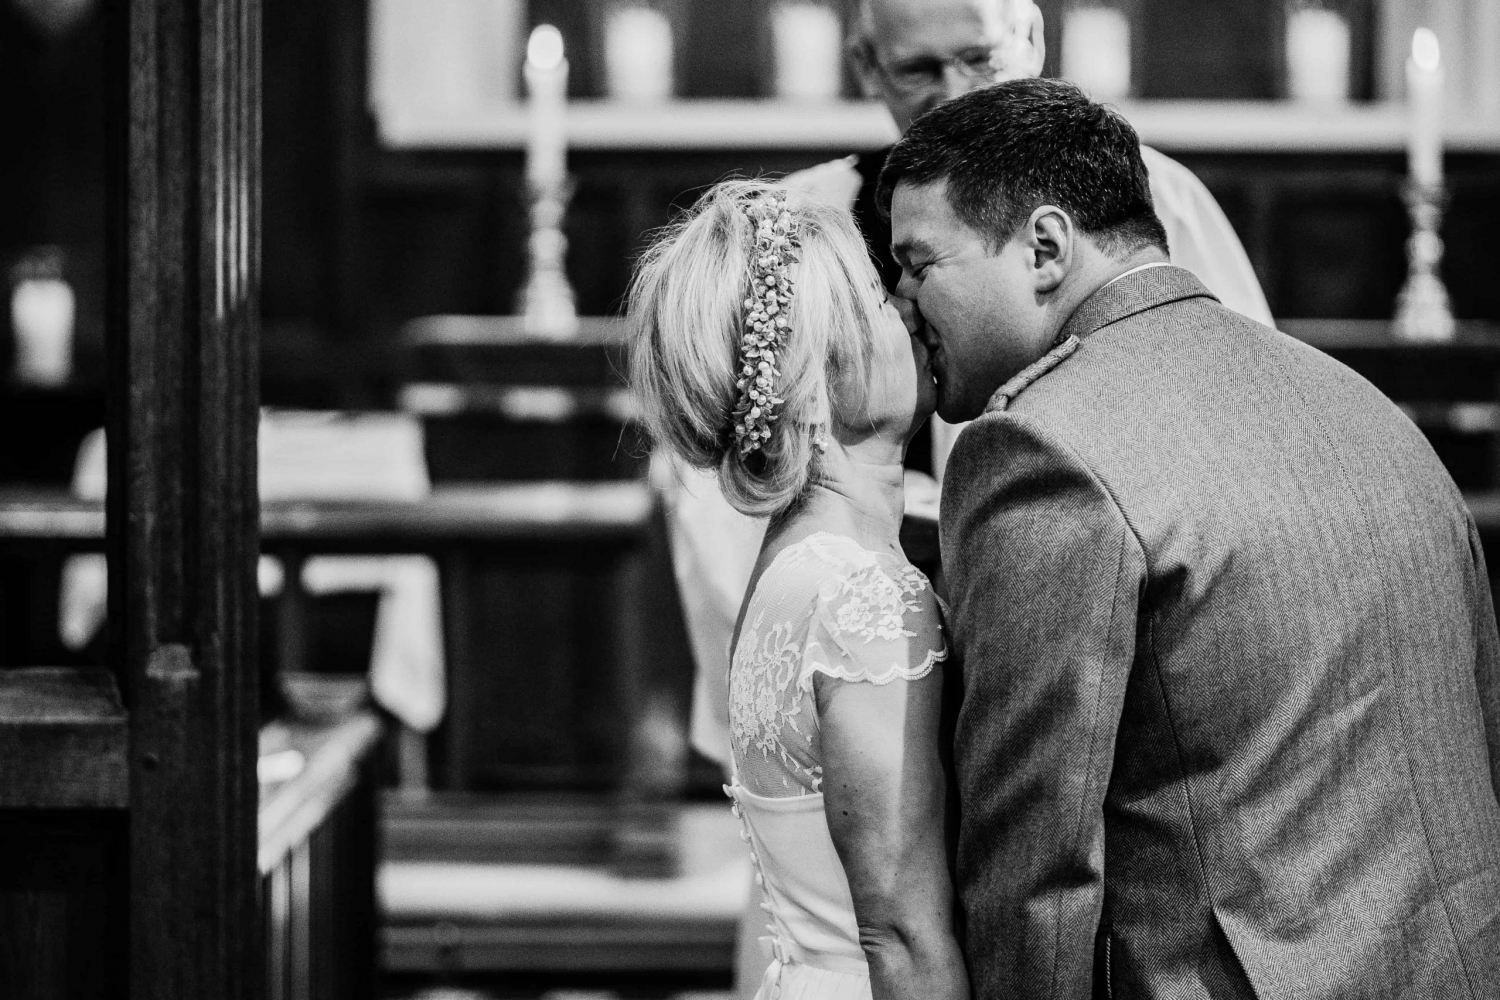 A newly married couple share their first kiss in church